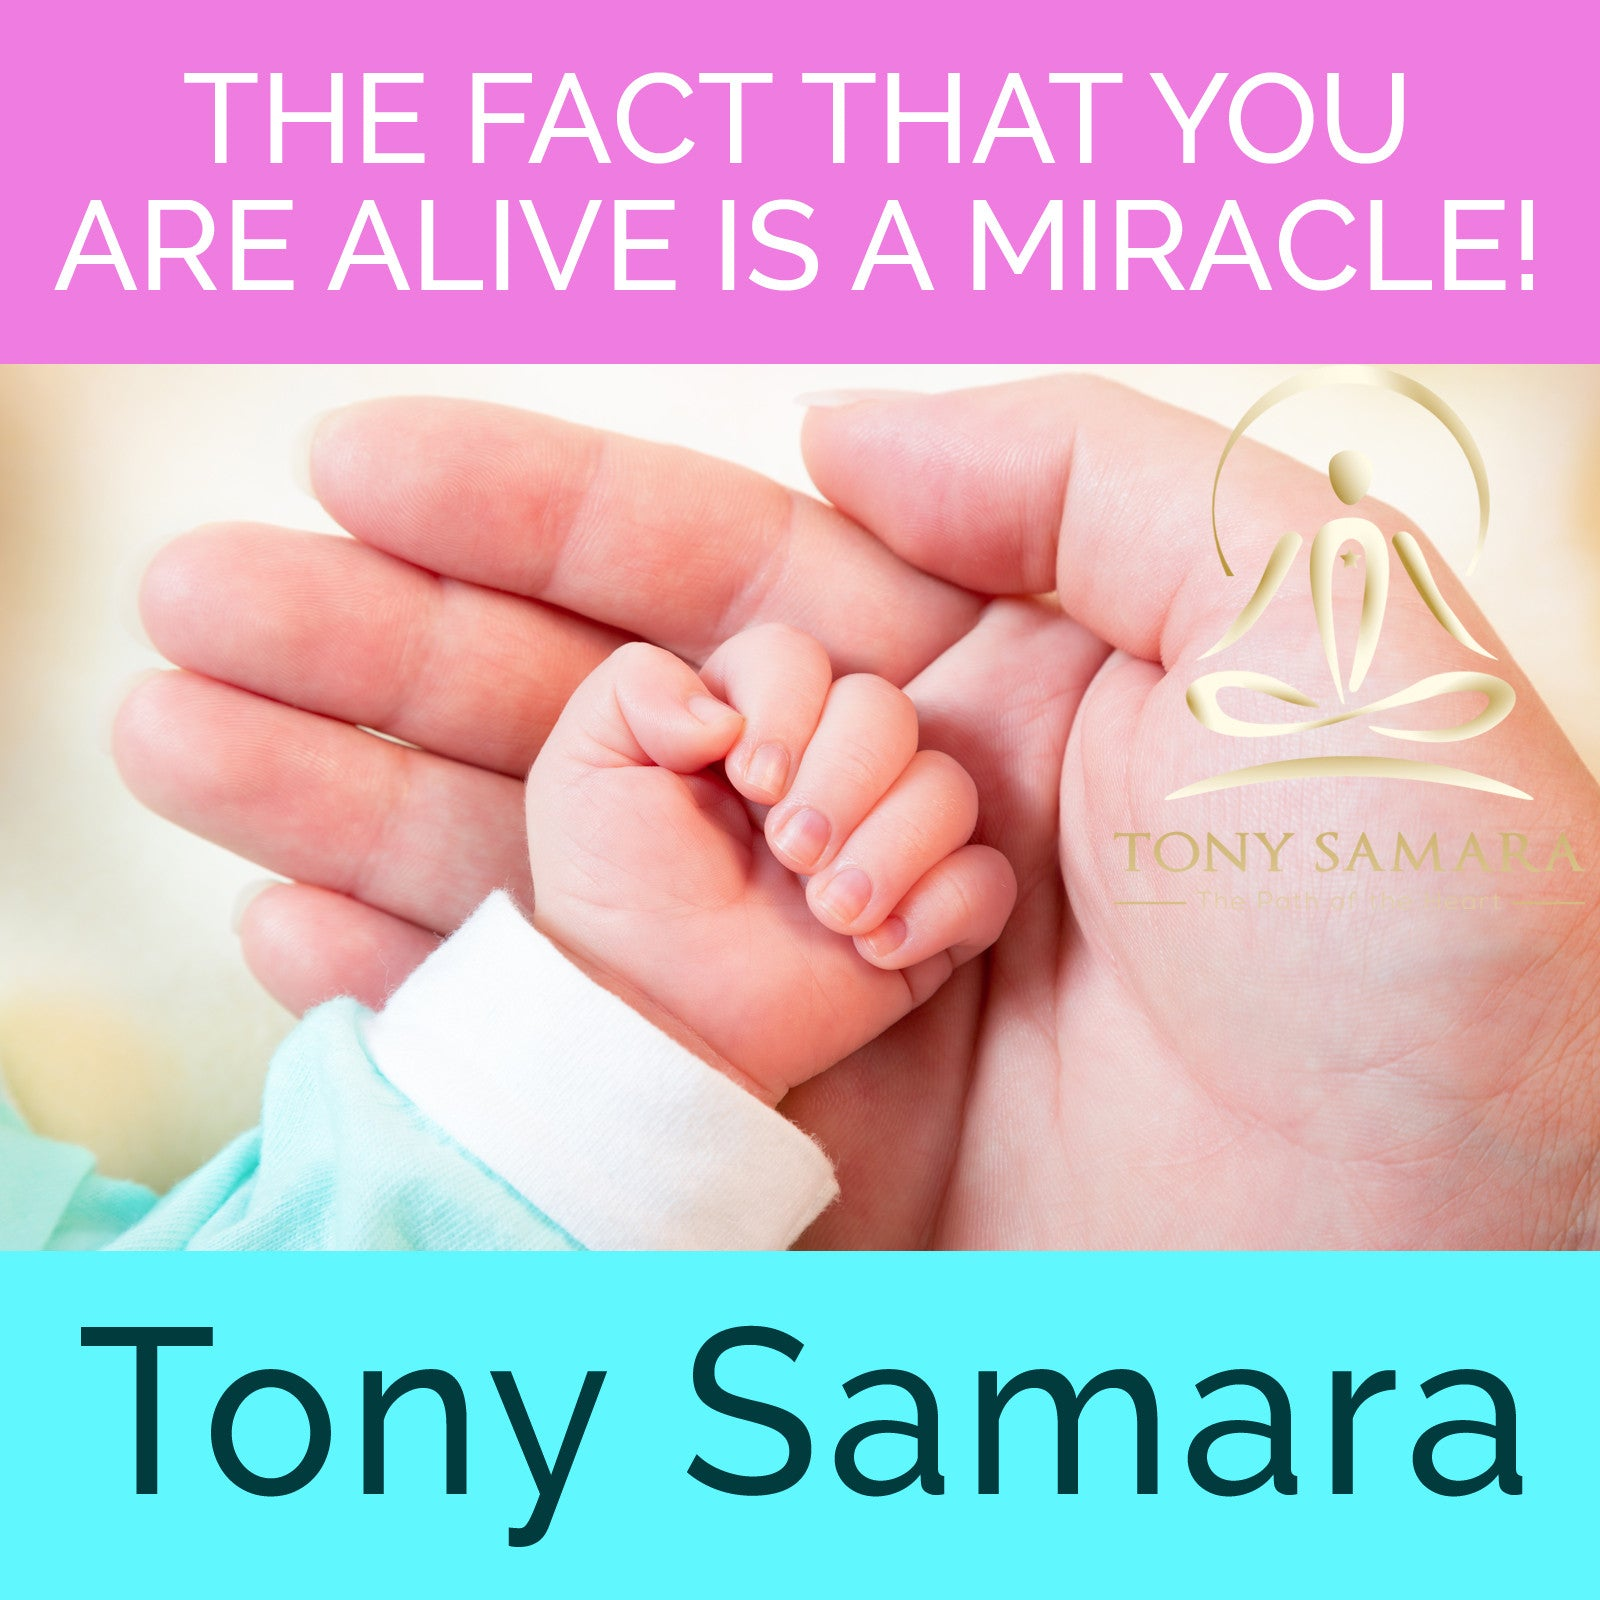 The Fact That You Are Alive is a Miracle! (MP3 Audio Download) - Tony Samara Meditation